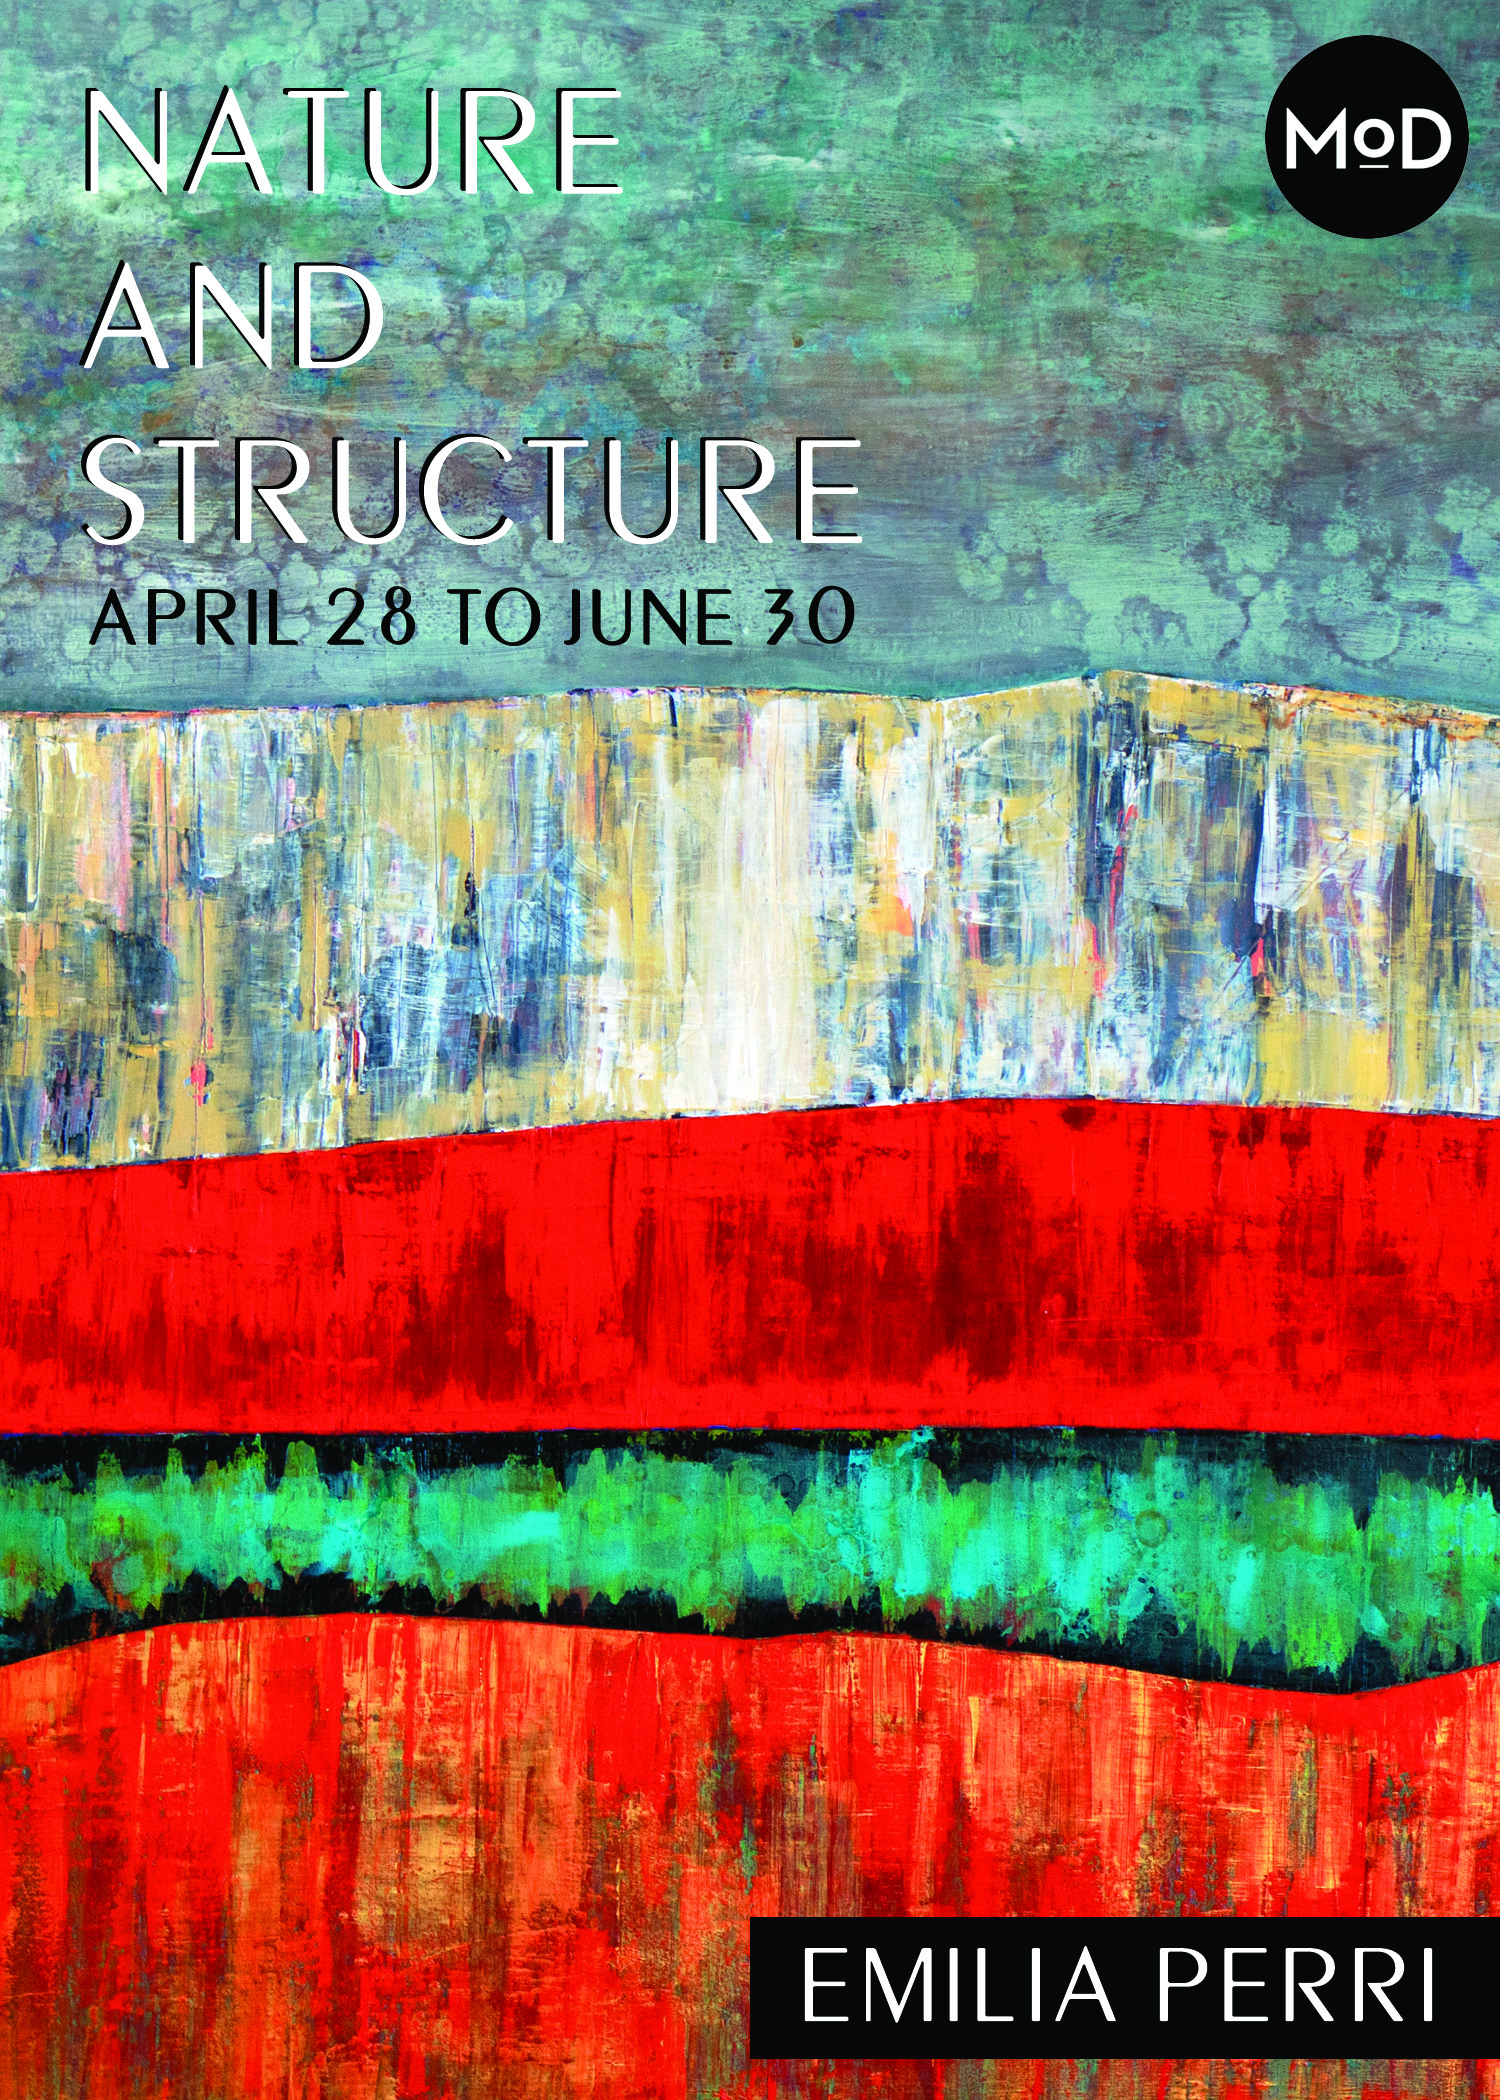 Nature Structure Invite  Emilia Perri.jpg